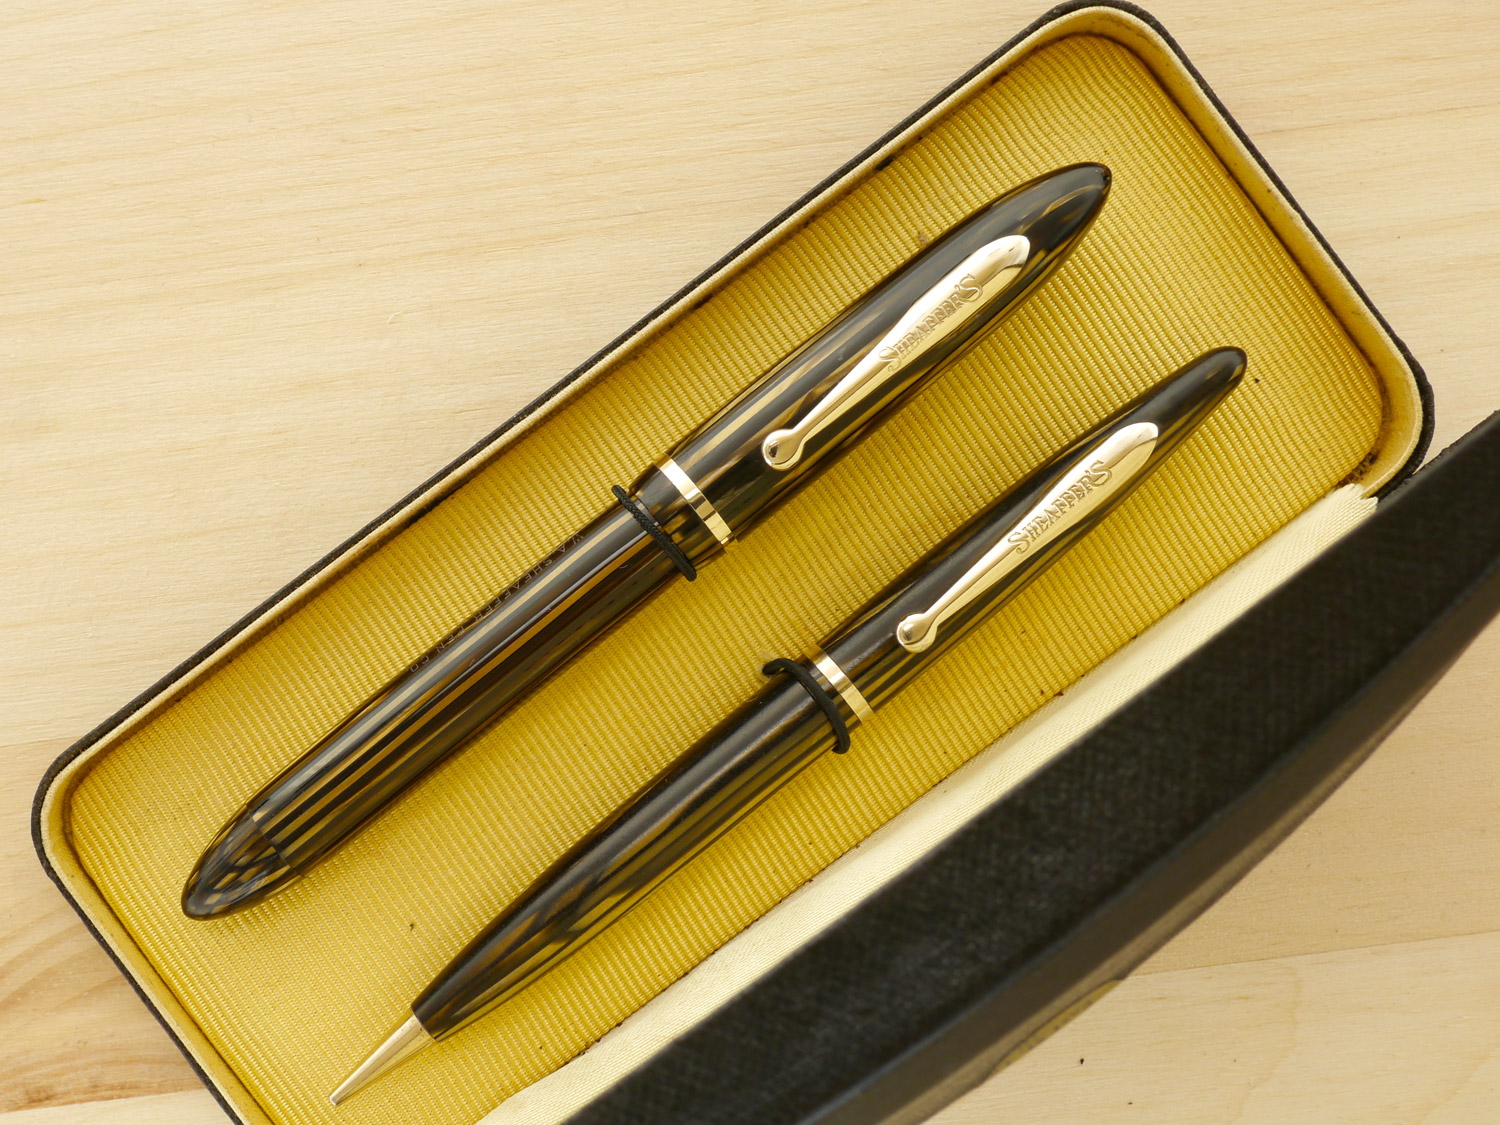 Sheaffer Balance Vac Golden Brown Pen & Pencil Set, XF, boxed